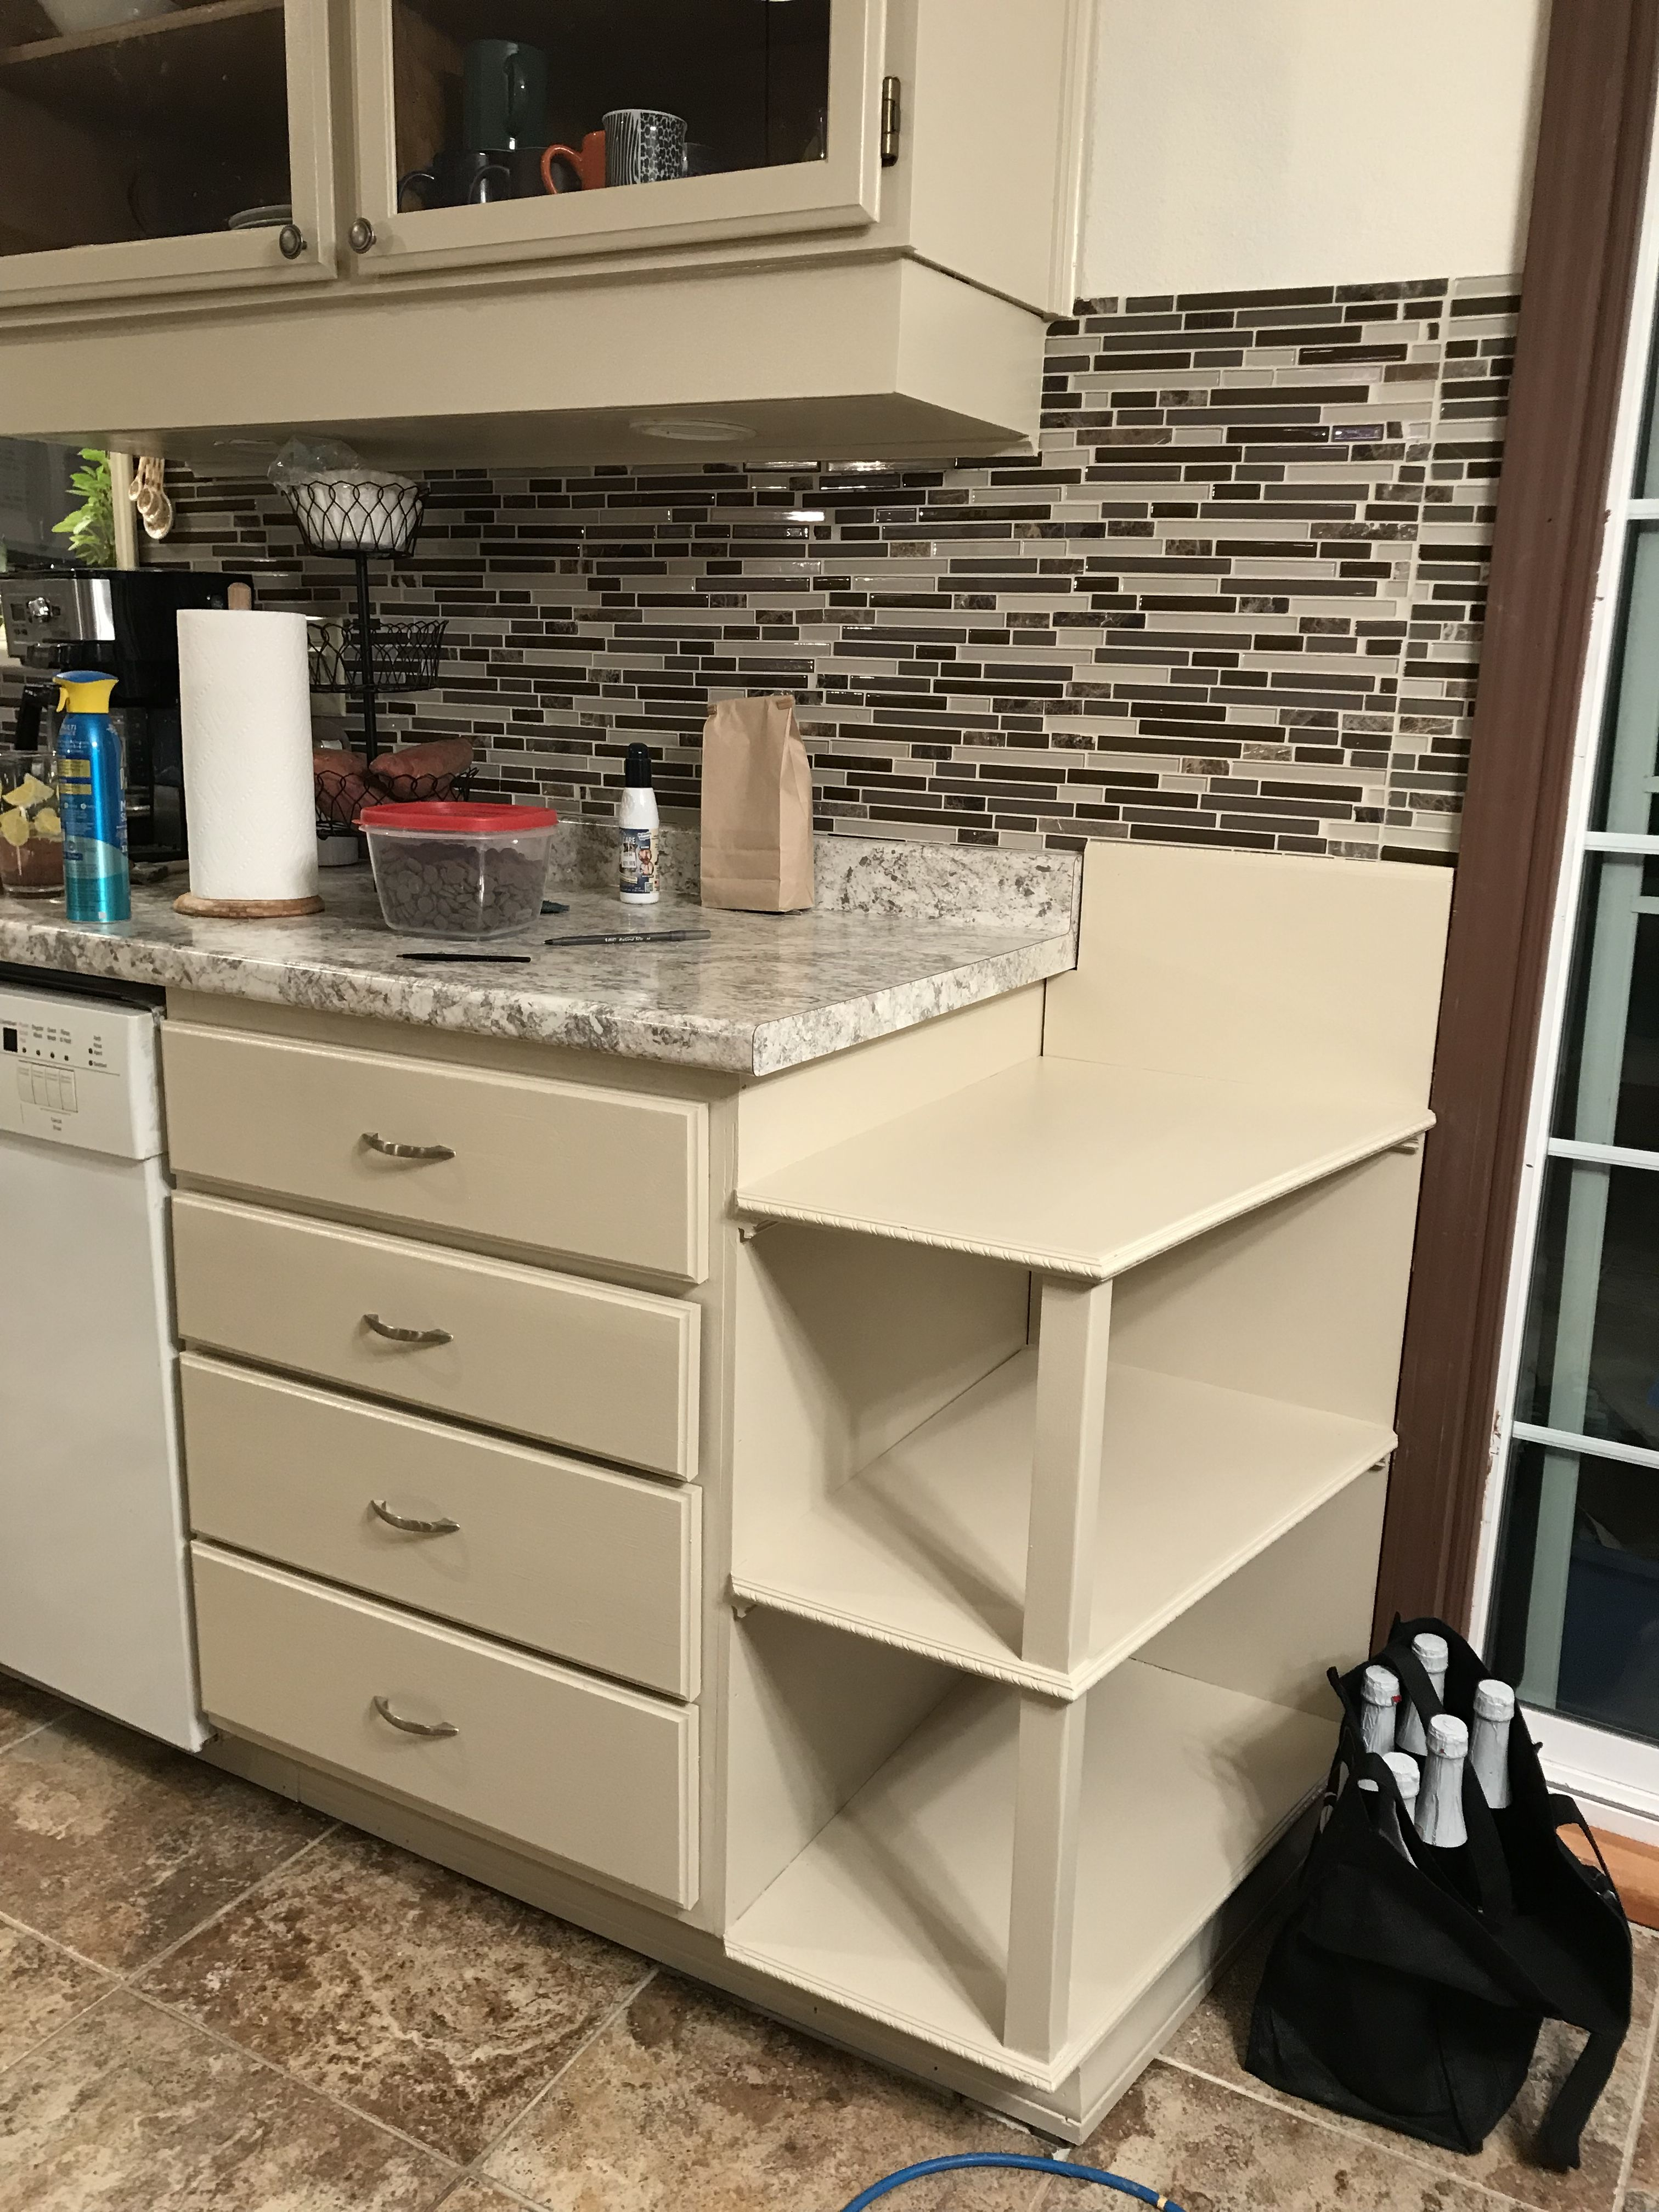 An Easy Counter Top End Shelf Idea We Removed An Old Cabinet And Had To Cover Up Some Flooring That Didn T Have Ti Old Cabinets Rustic Kitchen Updated Kitchen